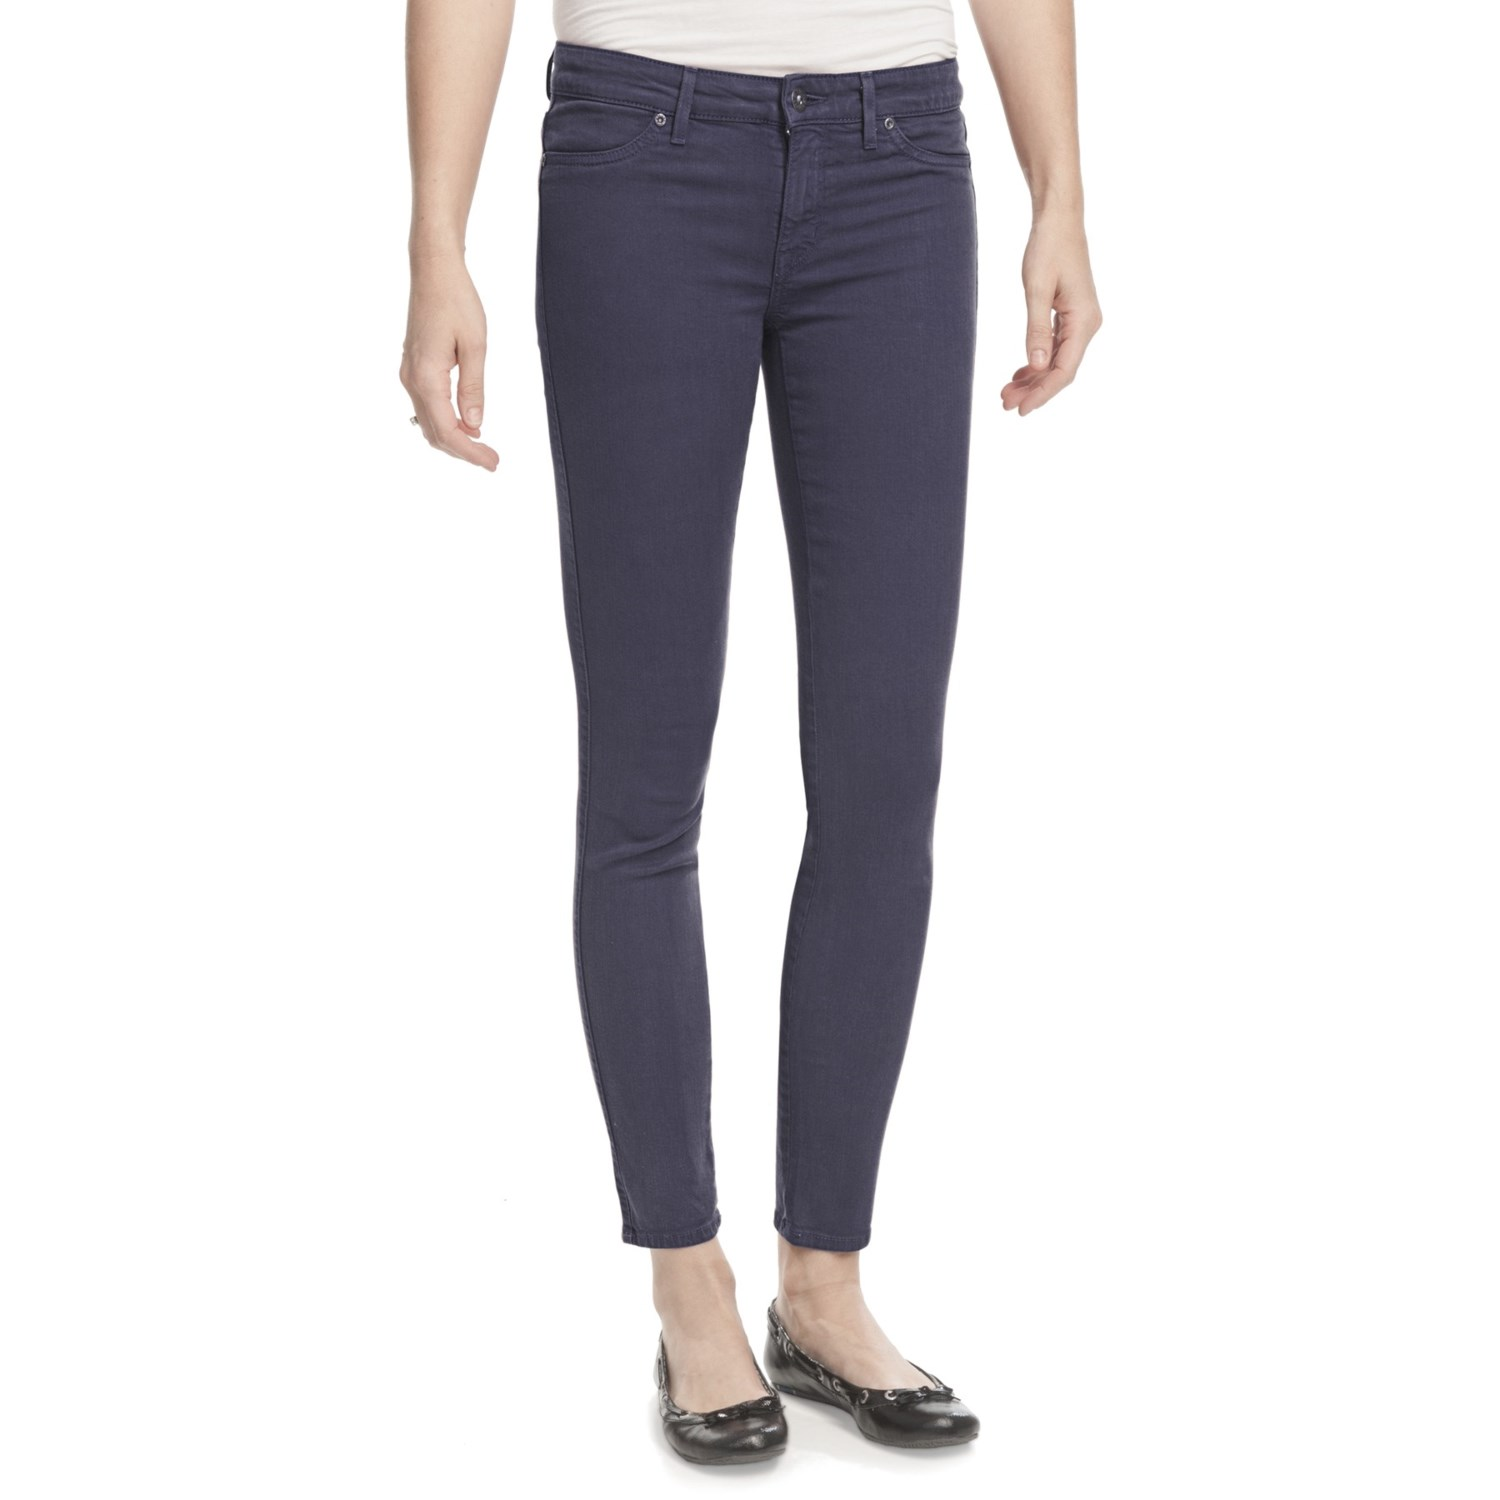 Rich & Skinny Jeans (the way they make you feel) is beyond the 5-pocket jean, with a focus on color, unique washes, a wide variety of fashion forward styles, and of course an awesome fit with just the right amount of attitude.